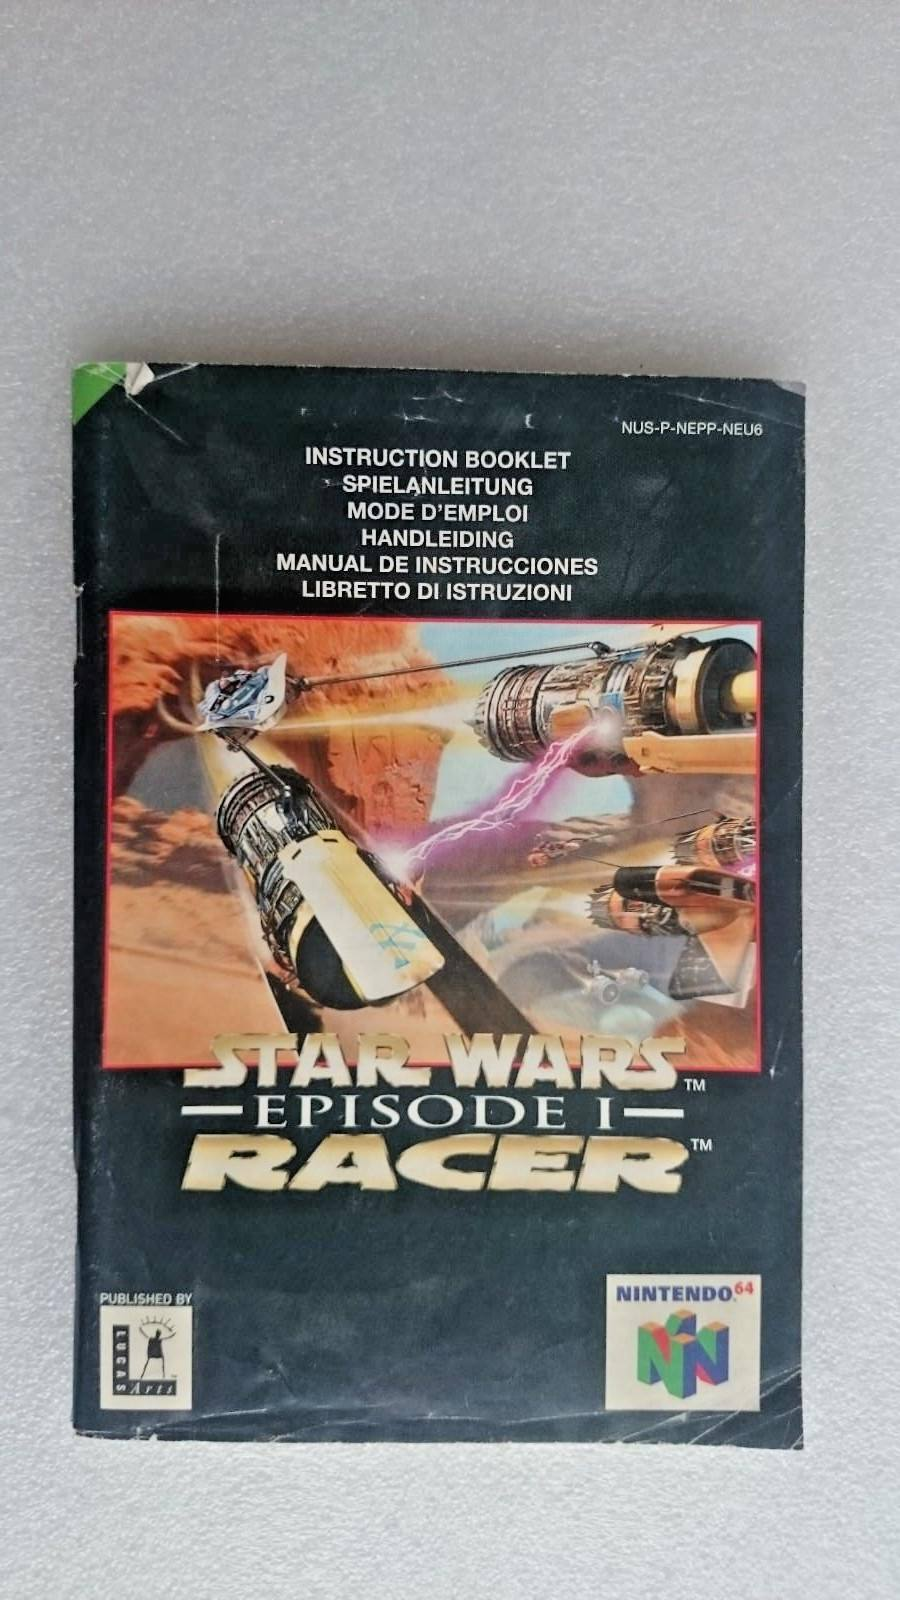 Nintendo Star Wars Episode 1 Racer Game Manual